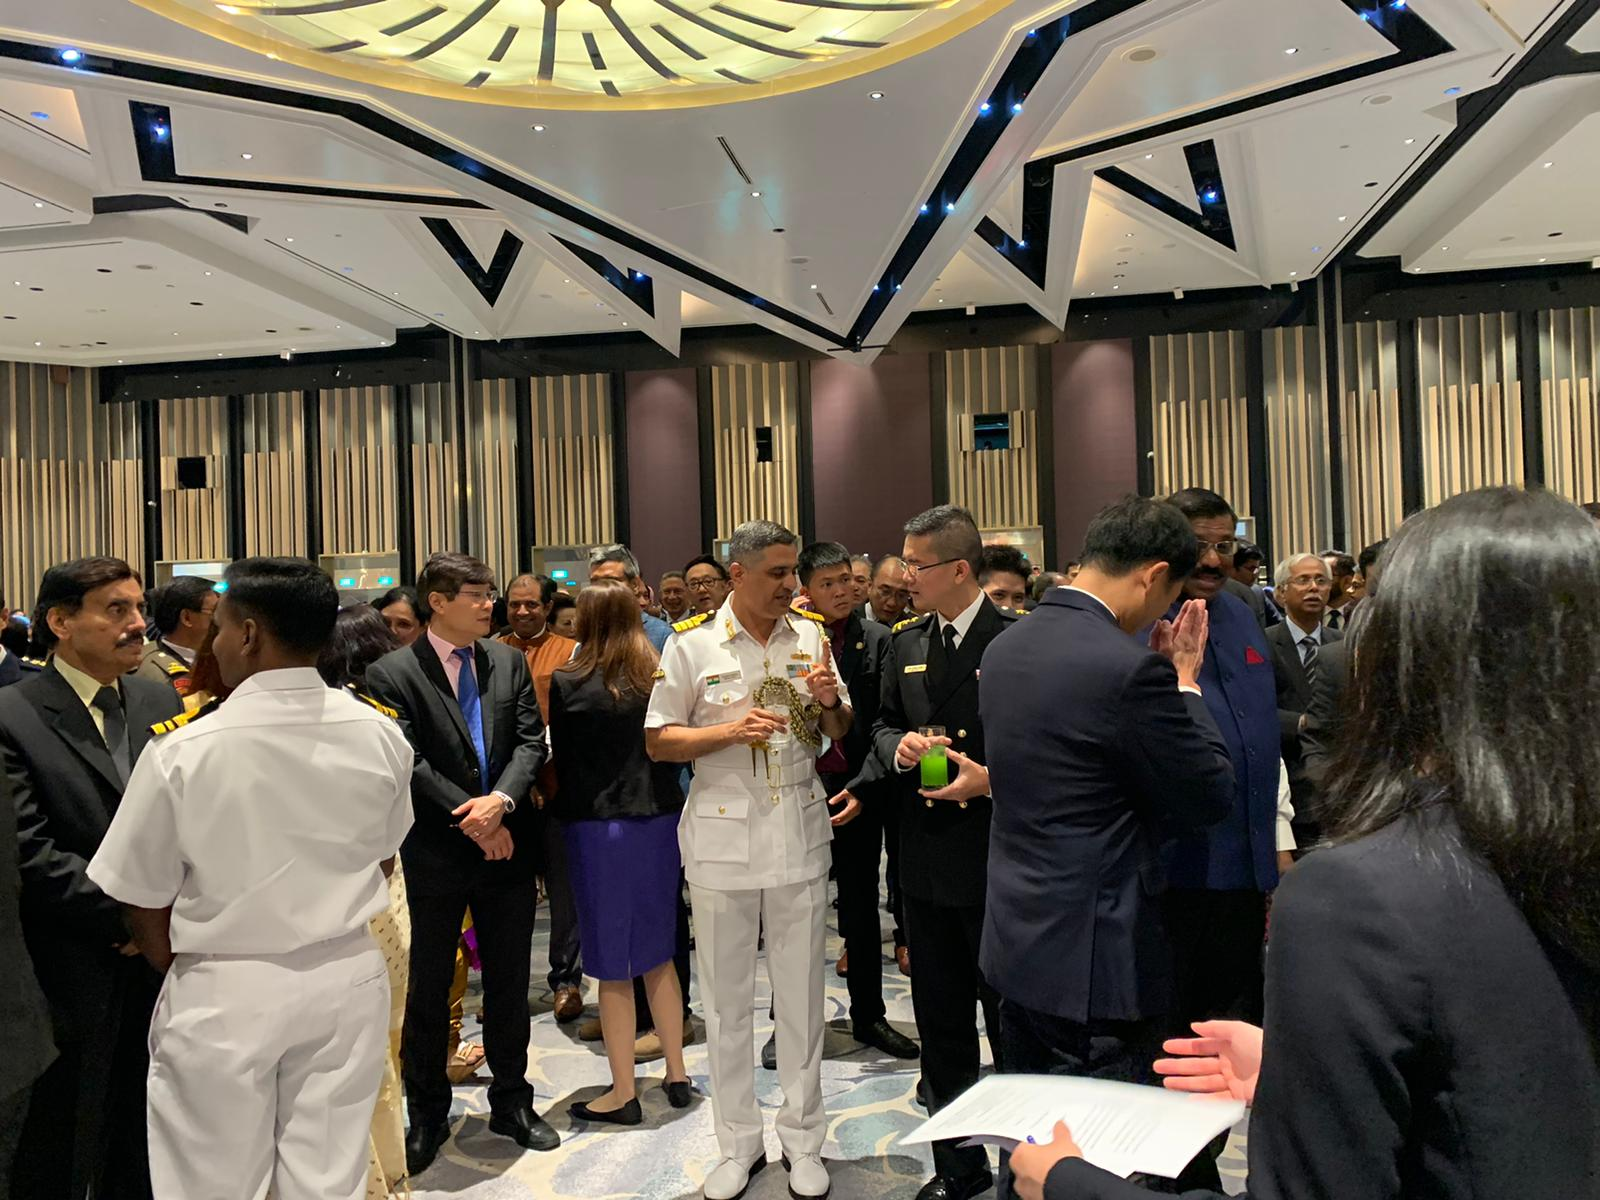 Rear-Admiral Lew Chuen Hong, Chief of Navy of the Republic of Singapore in conversations with senior members of the Republic of India Navy at the reception to celebrate India's 71st Republic Day in Singapore. Photo: Connected to India